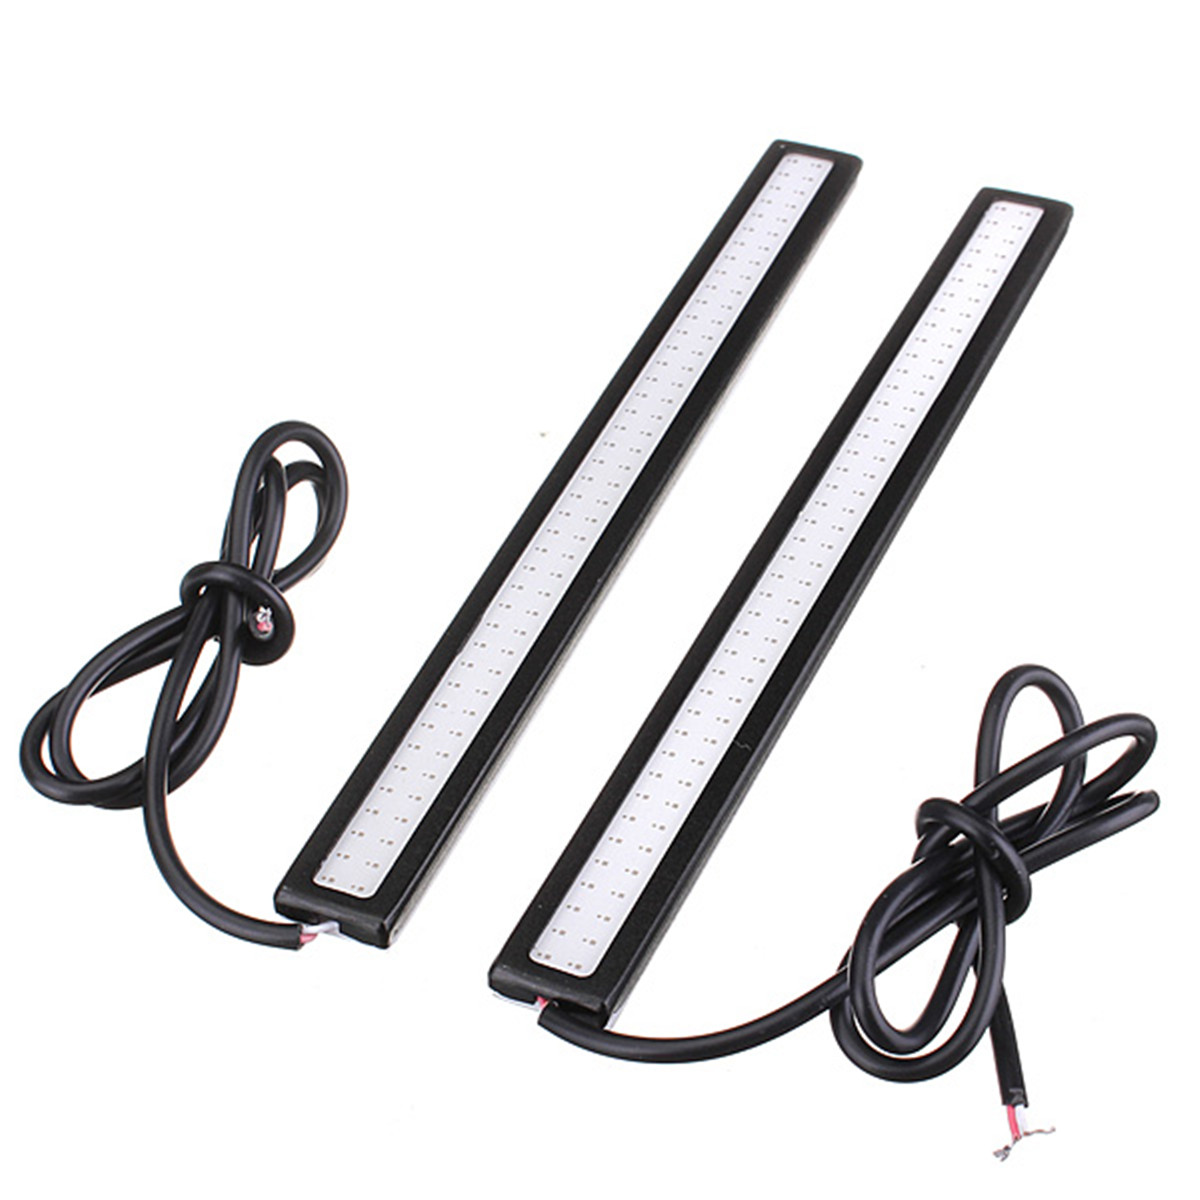 17cm COB LED DRL Daytime Running Lights Car Ultra Slim Driving Fog Lamp 12V 6W Waterproof 2PCS